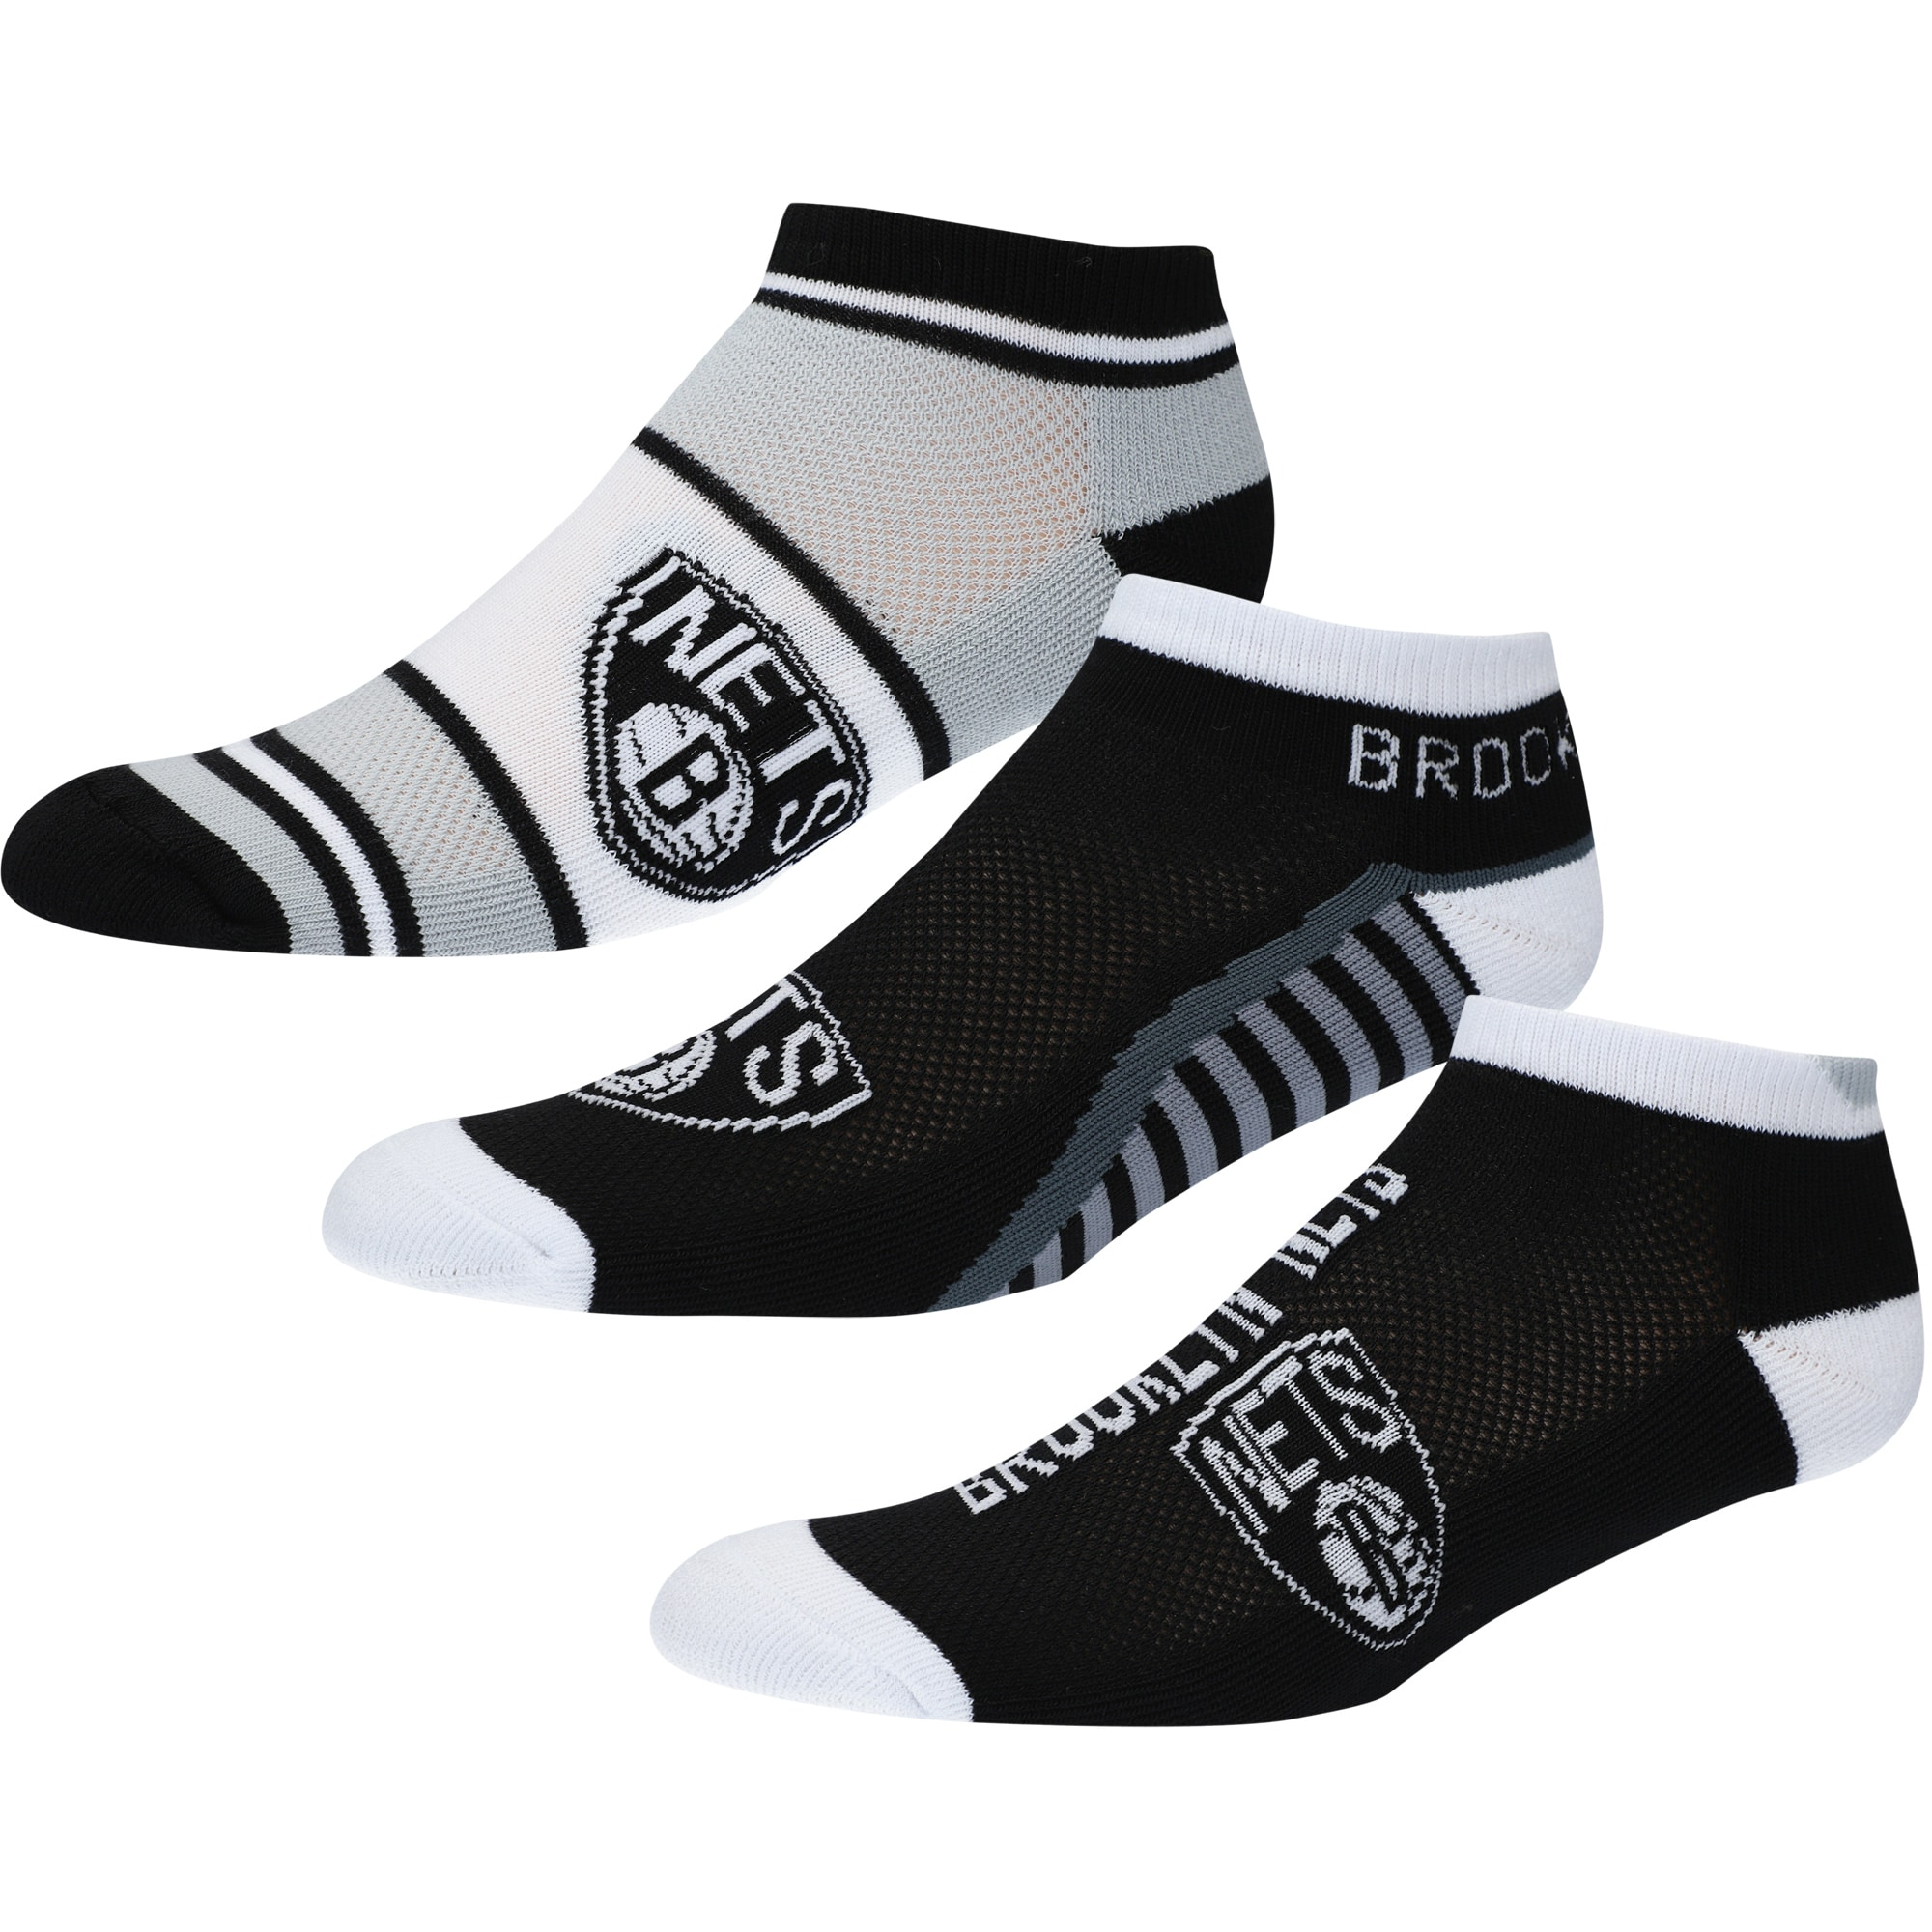 Brooklyn Nets For Bare Feet Youth 3-Pack Show Me the Money Ankle Socks